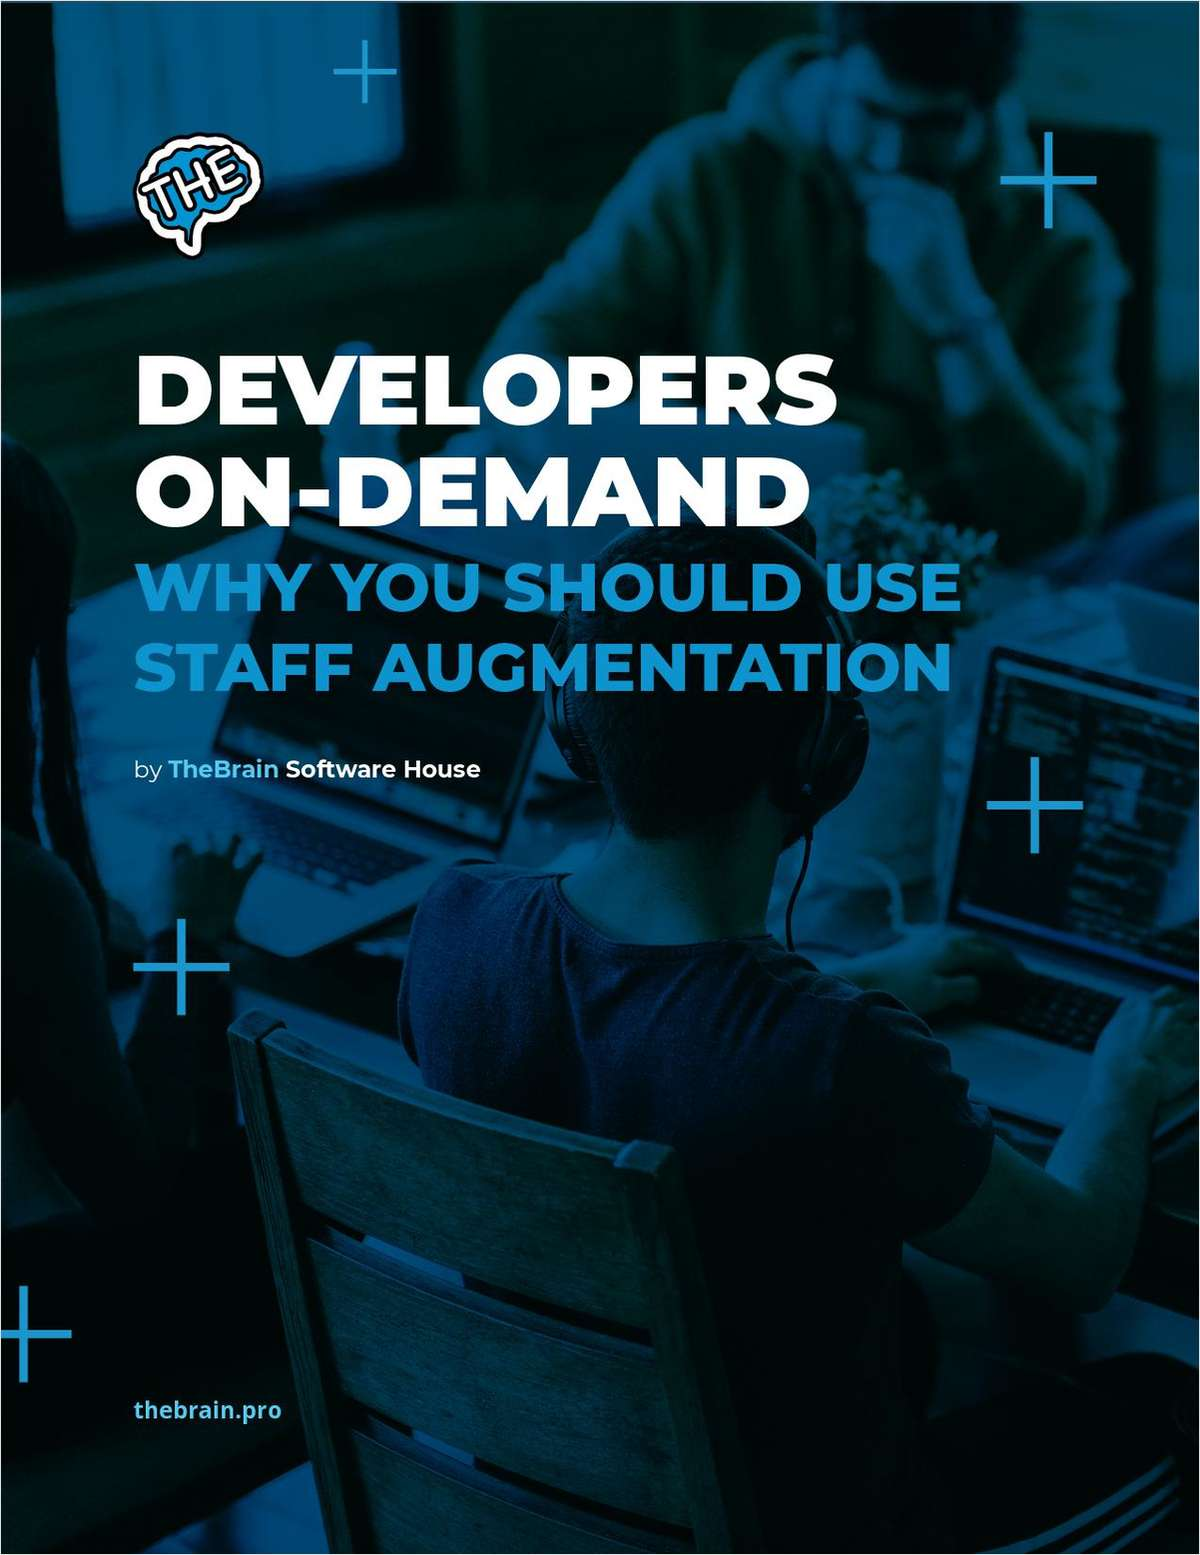 Developers On-Demand: Why You Should Use Staff Augmentation